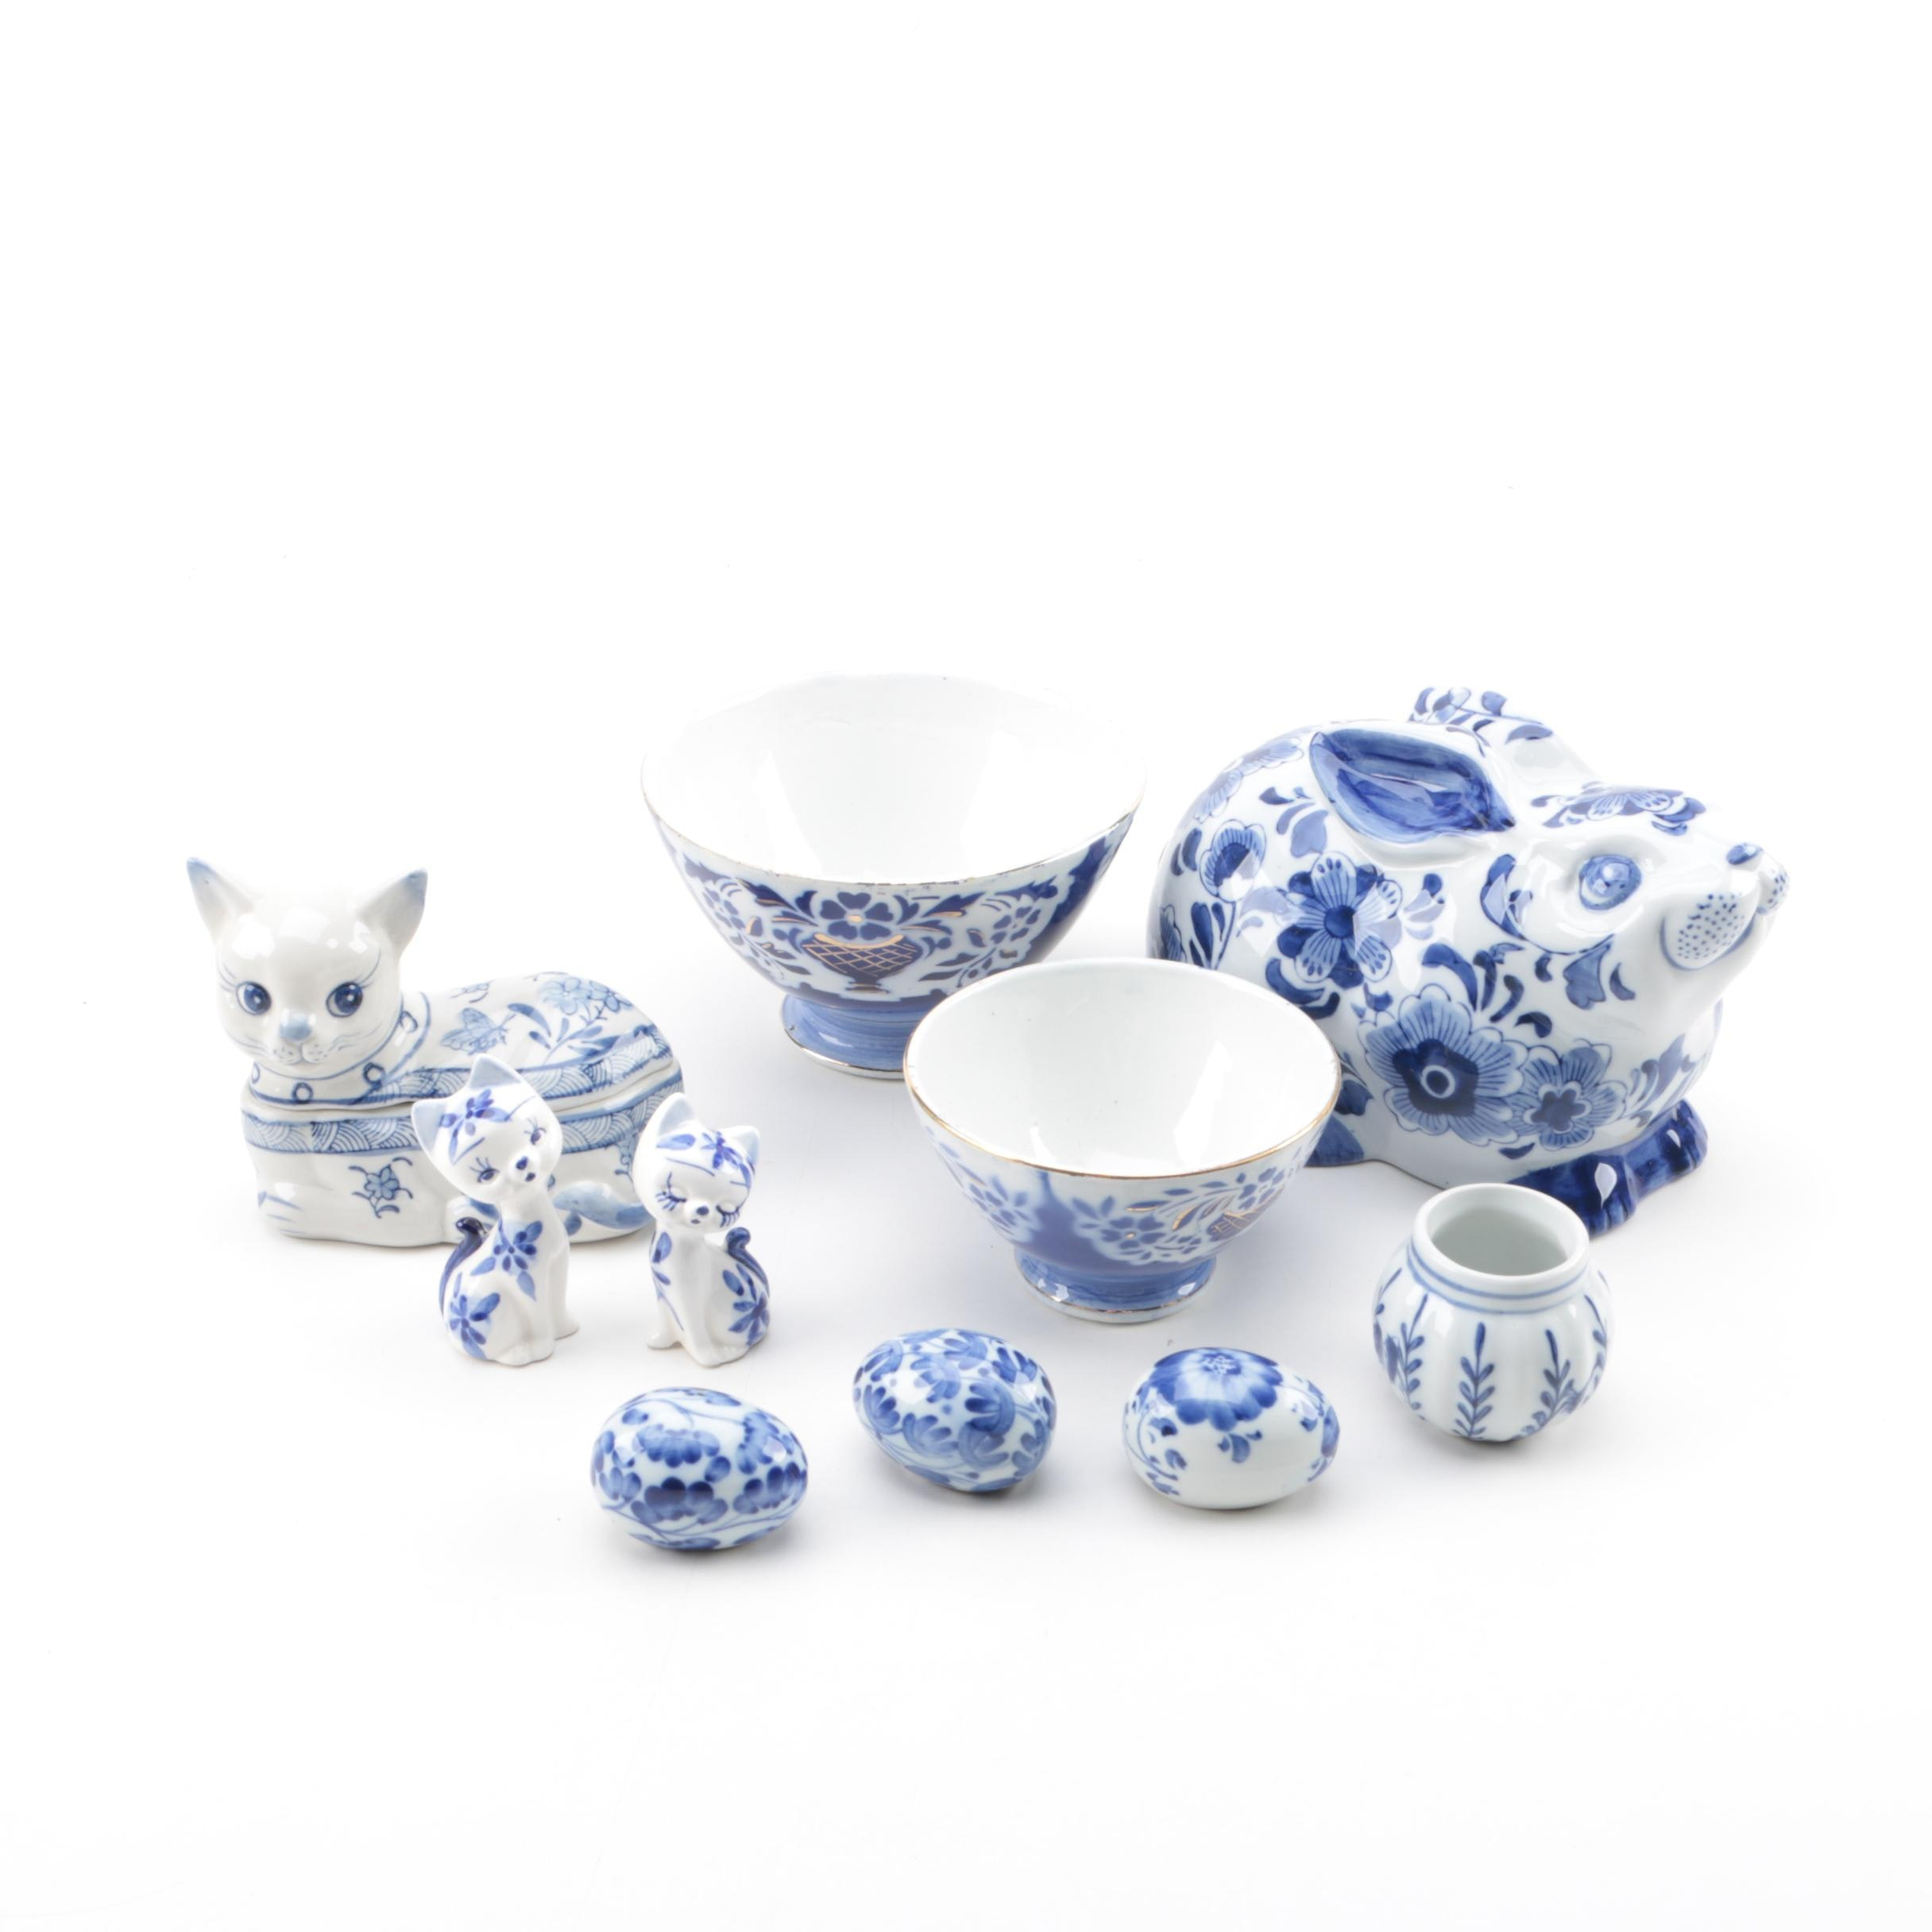 Blue and White Ceramic and Porcelain Bowls, Eggs, Figurines